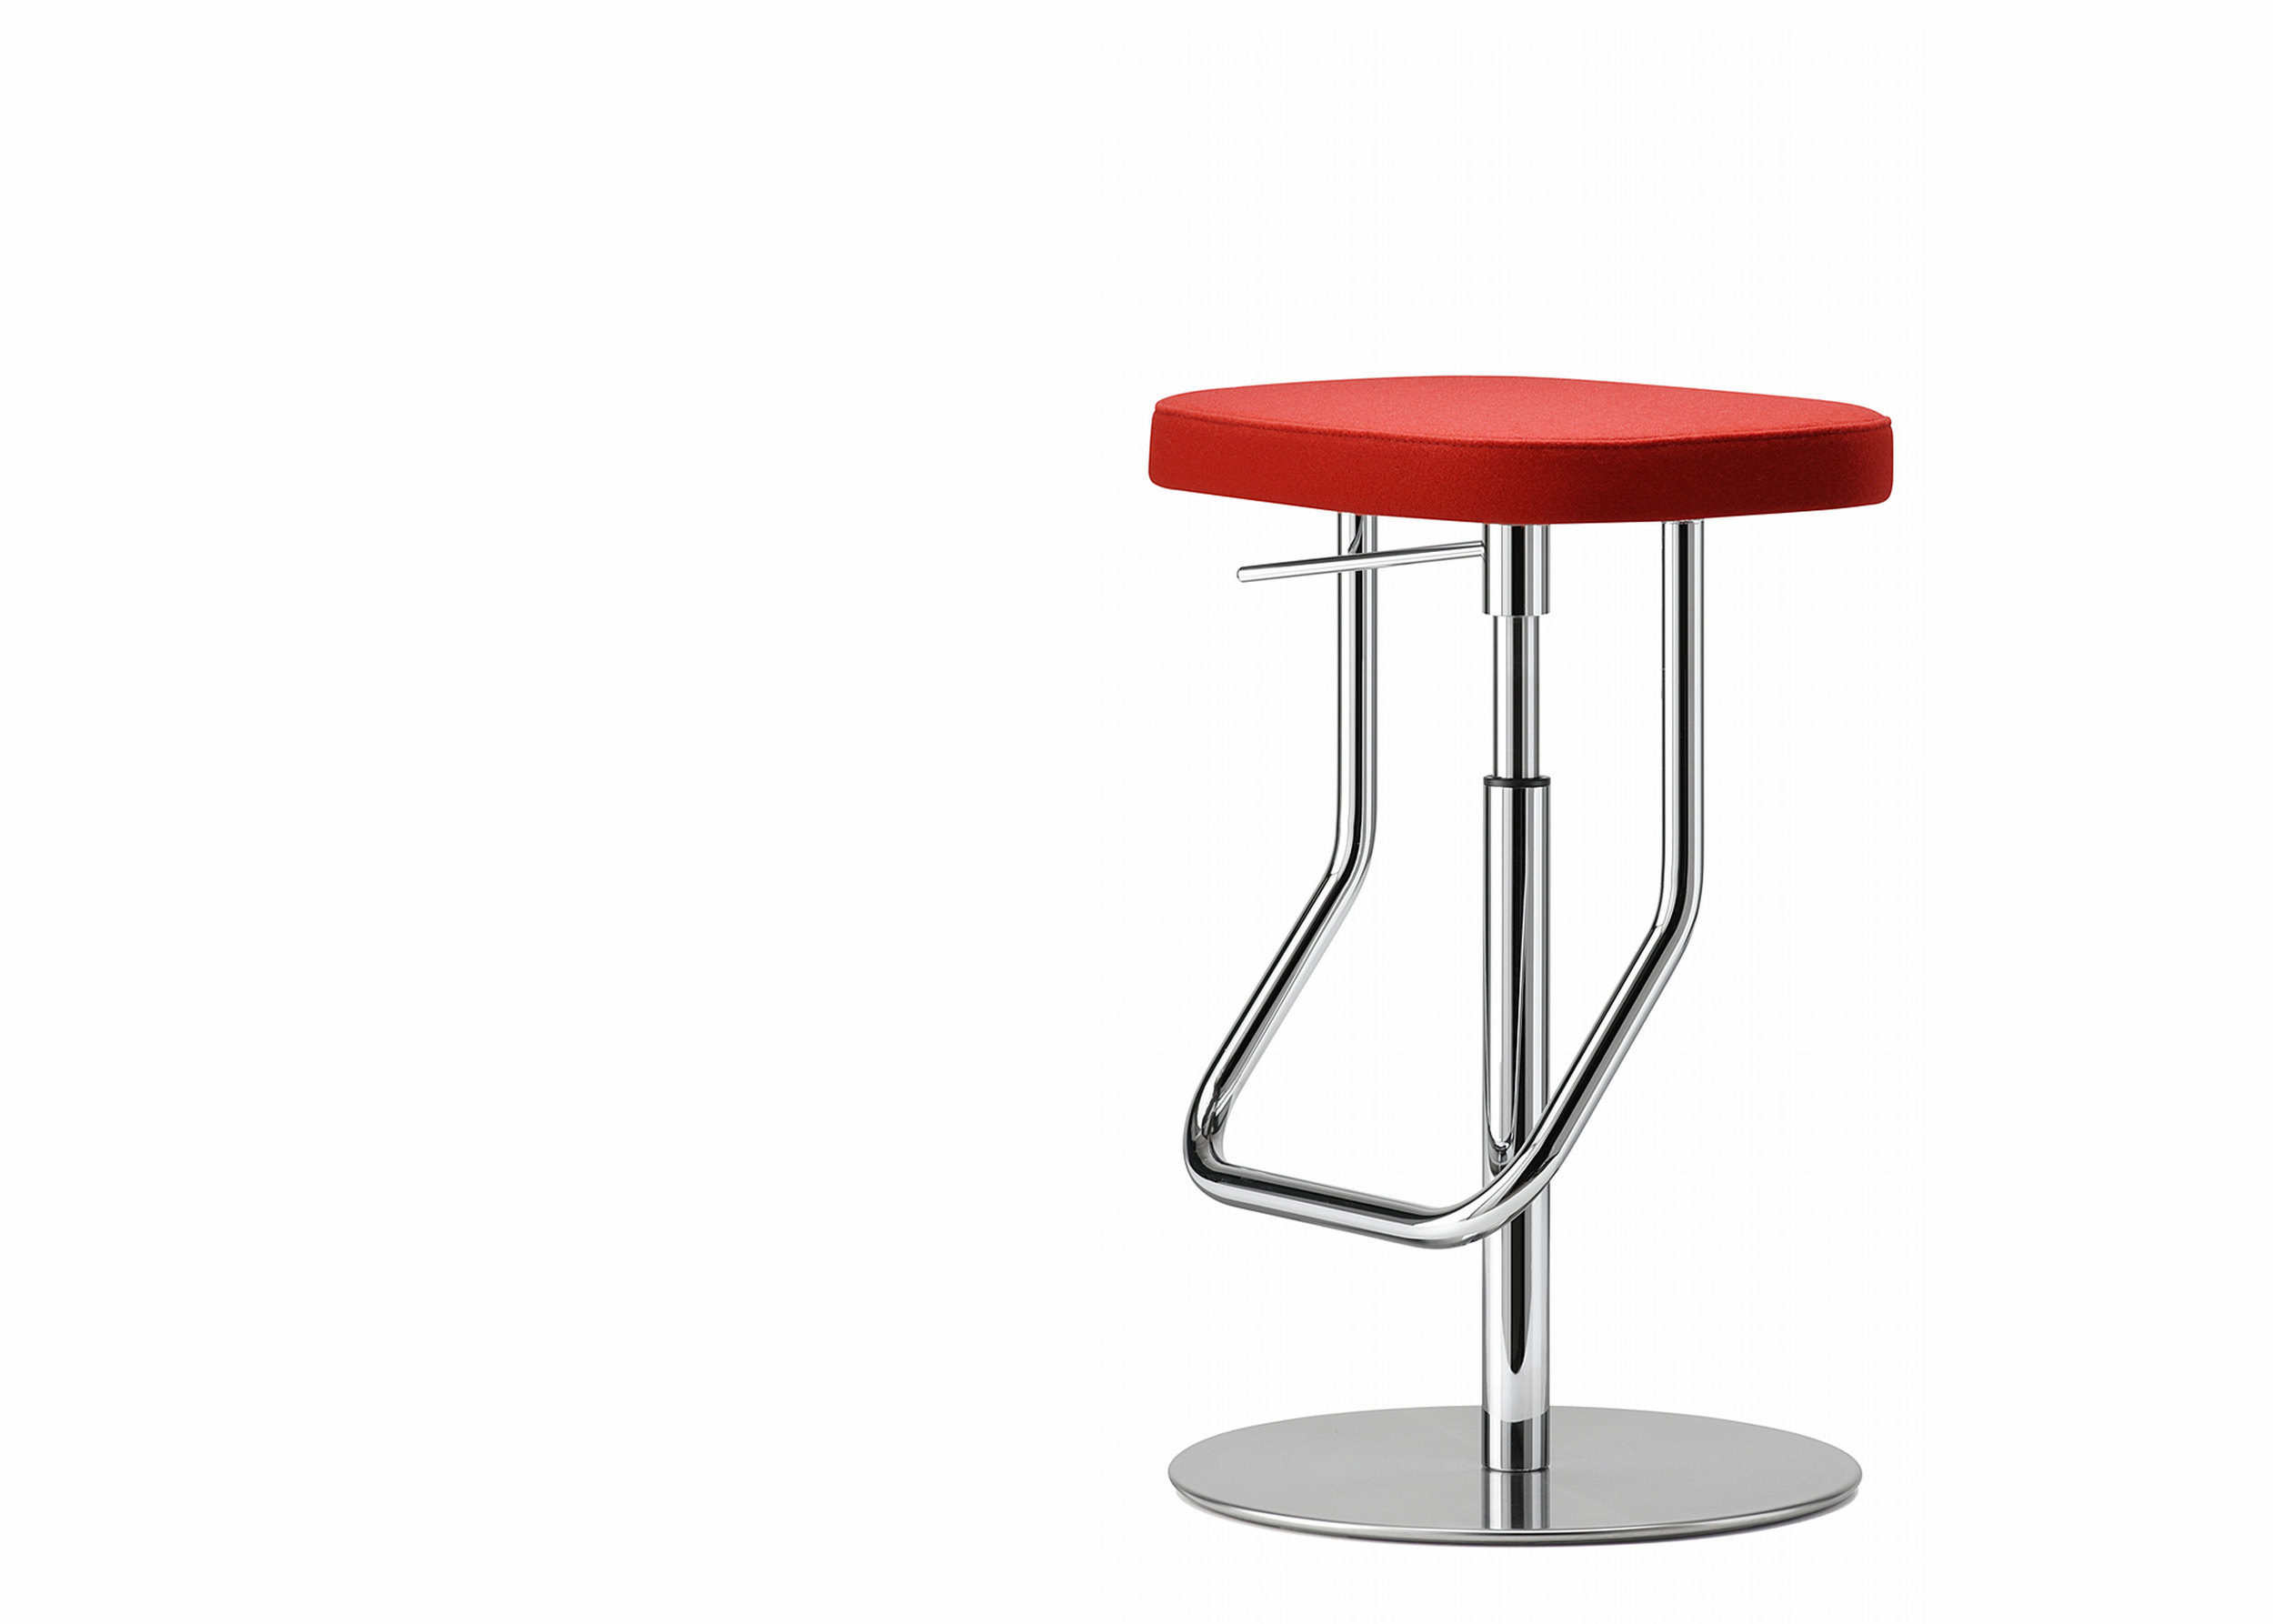 Range S 123 Stool by James Irvine -  starting price $660 LIST